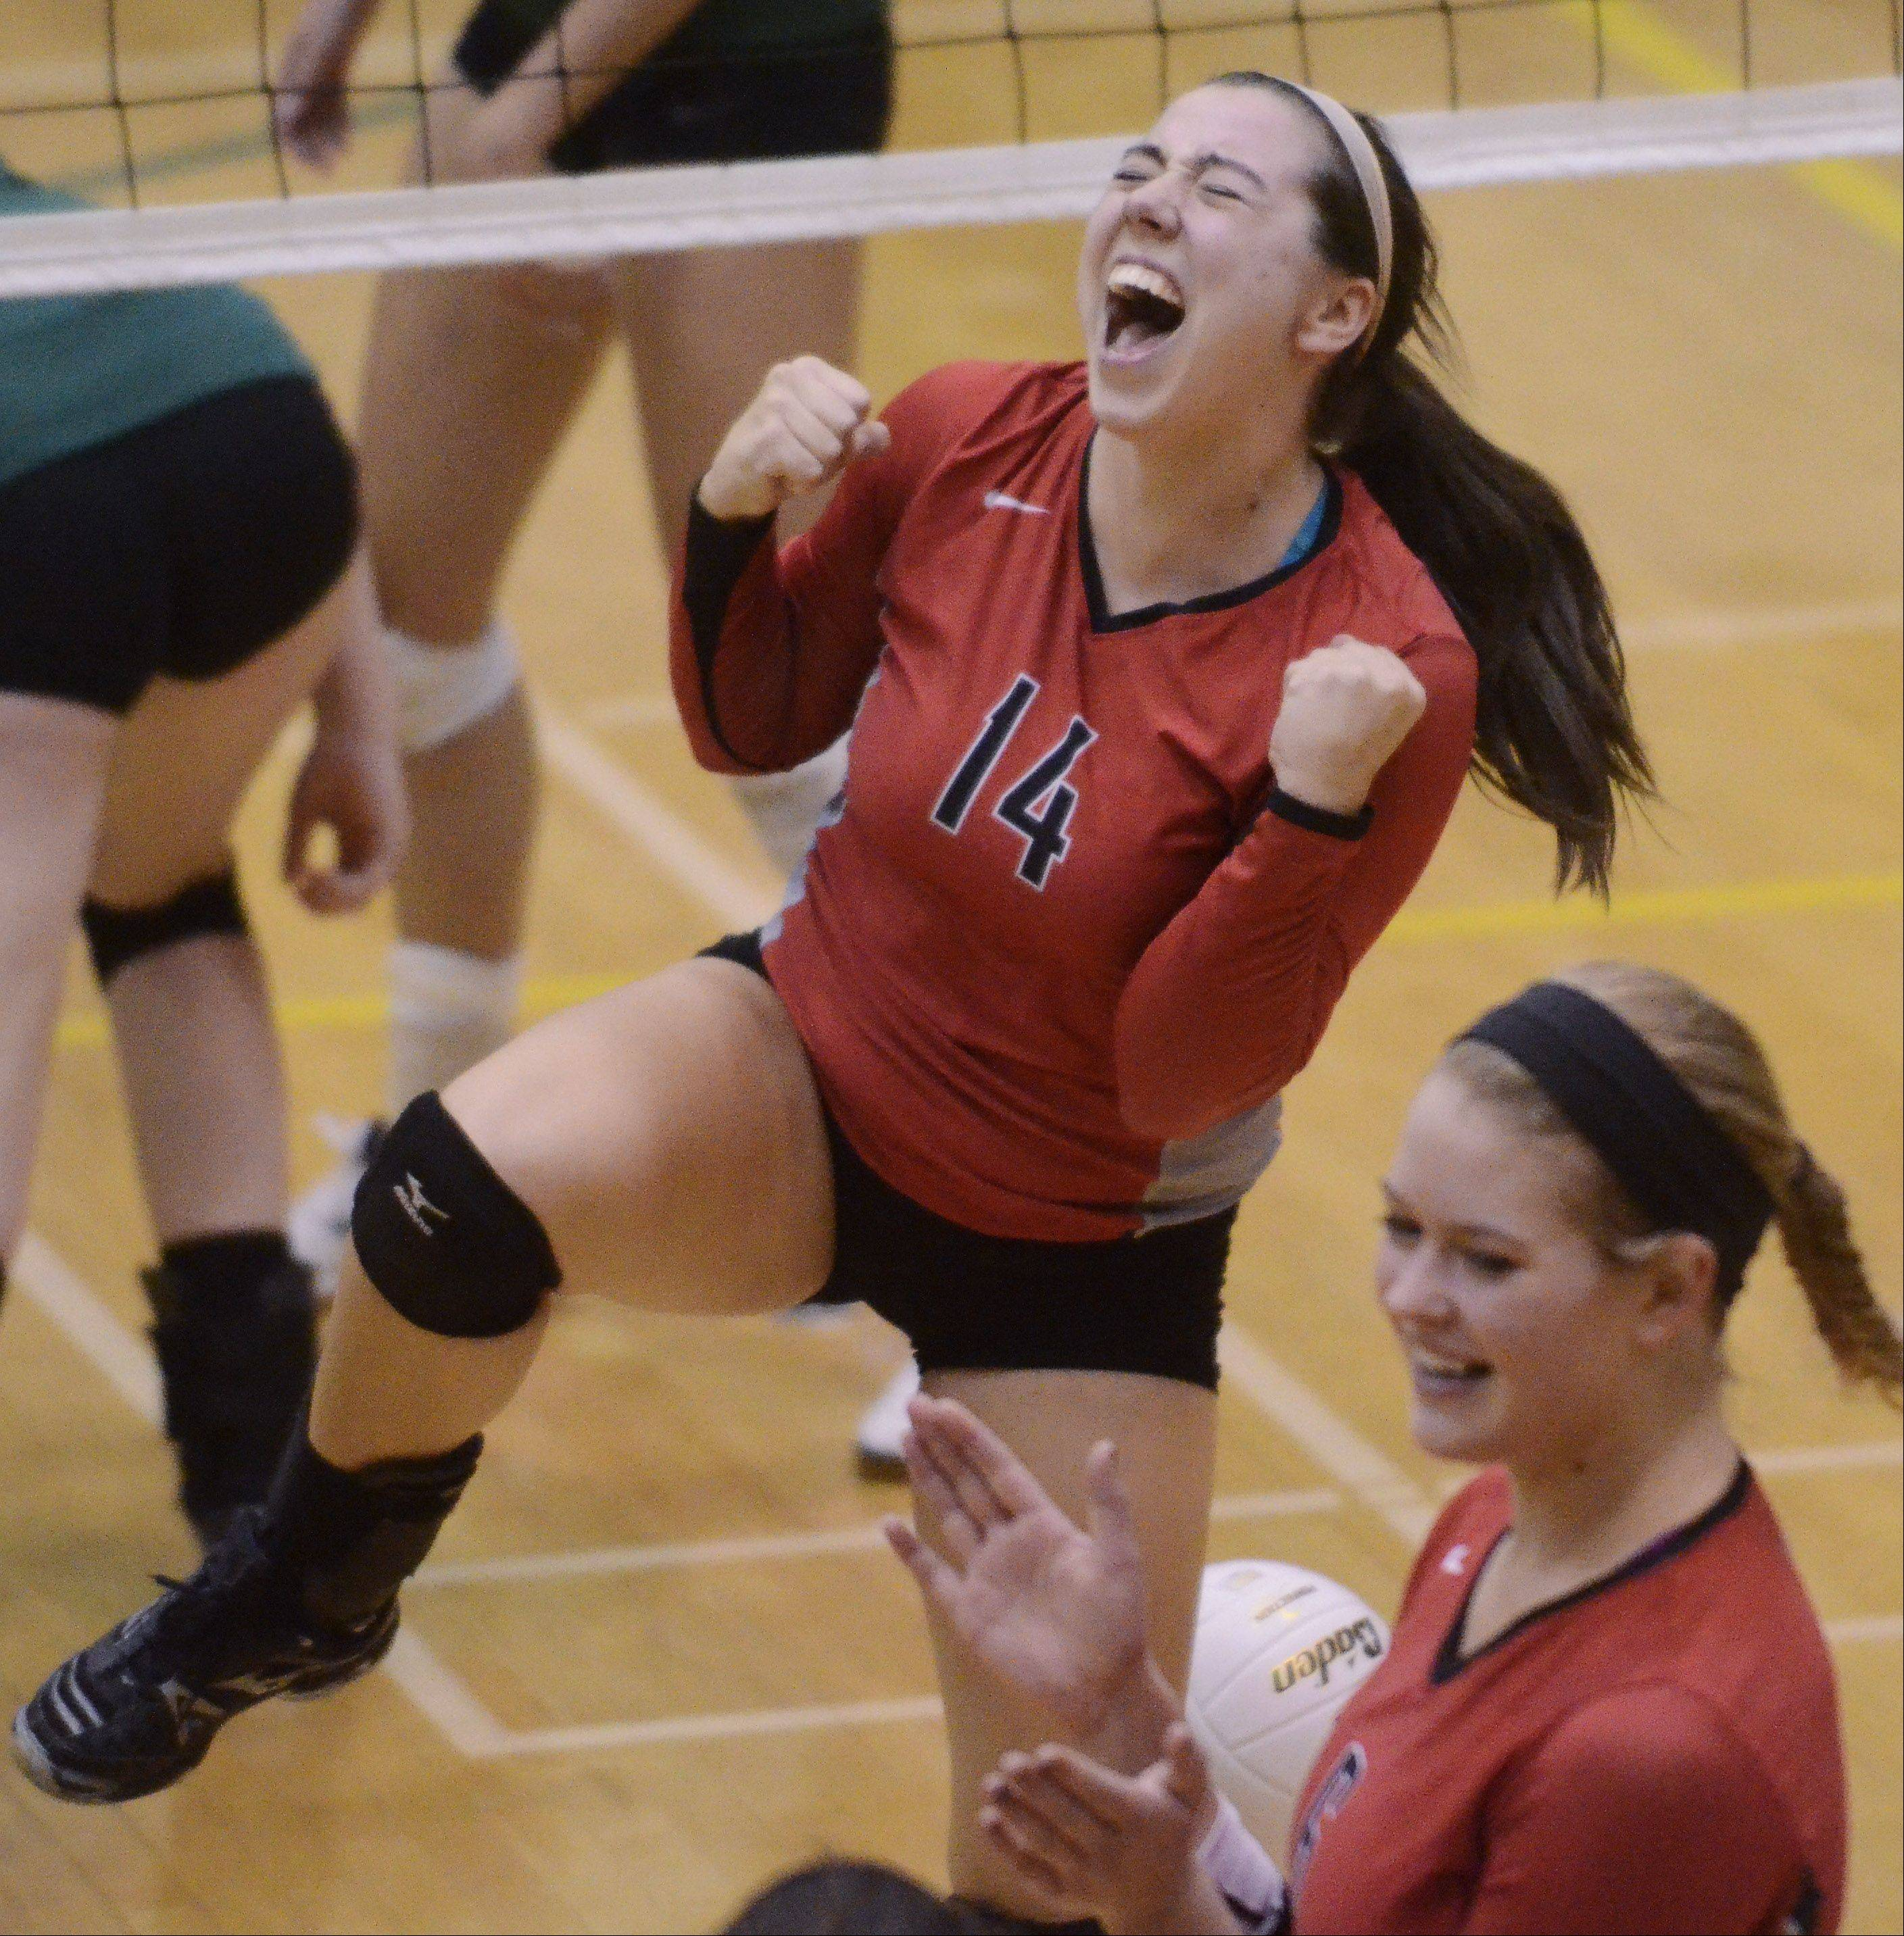 Palatine's Sarah Schiffner celebrates after earning a tough point during Tuesday's sectional semifinal at Fremd High School in Palatine.